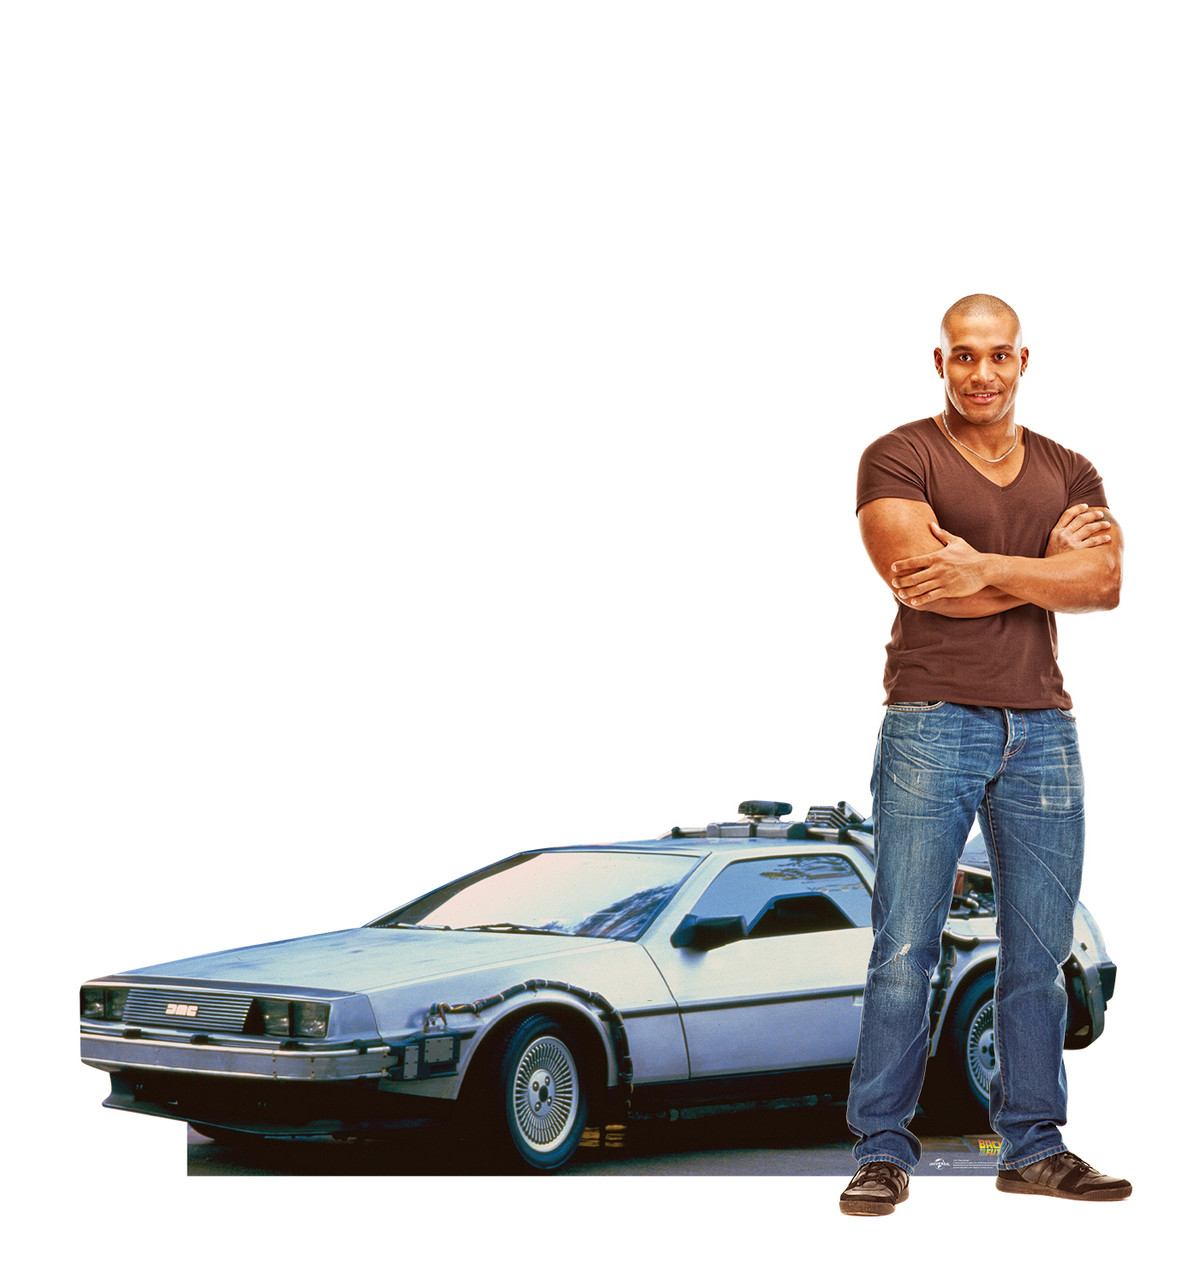 Life-size cardboard  standee of the DeLorean from Back to the Future movie with model.